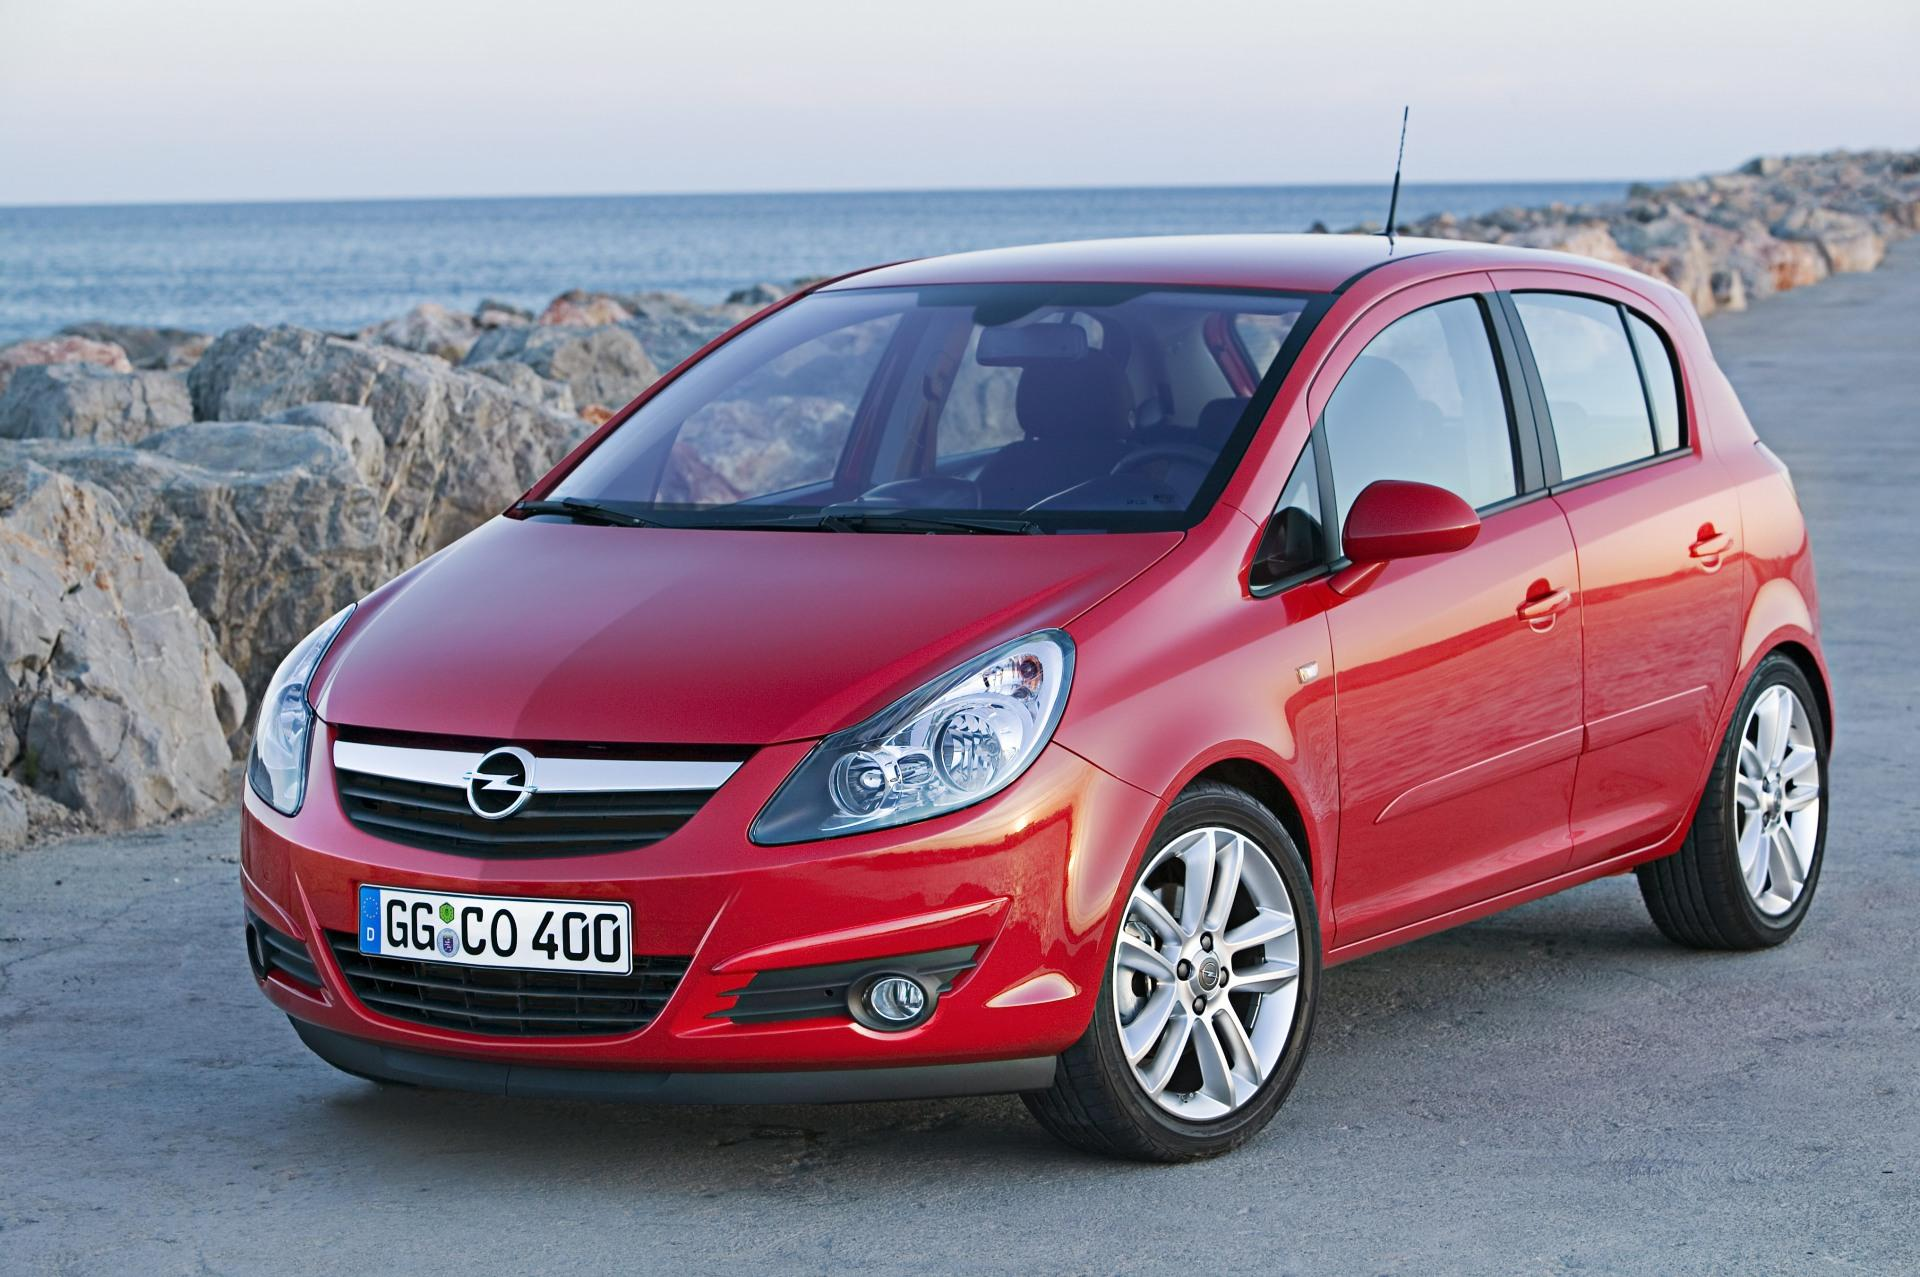 2009 opel corsa news and information